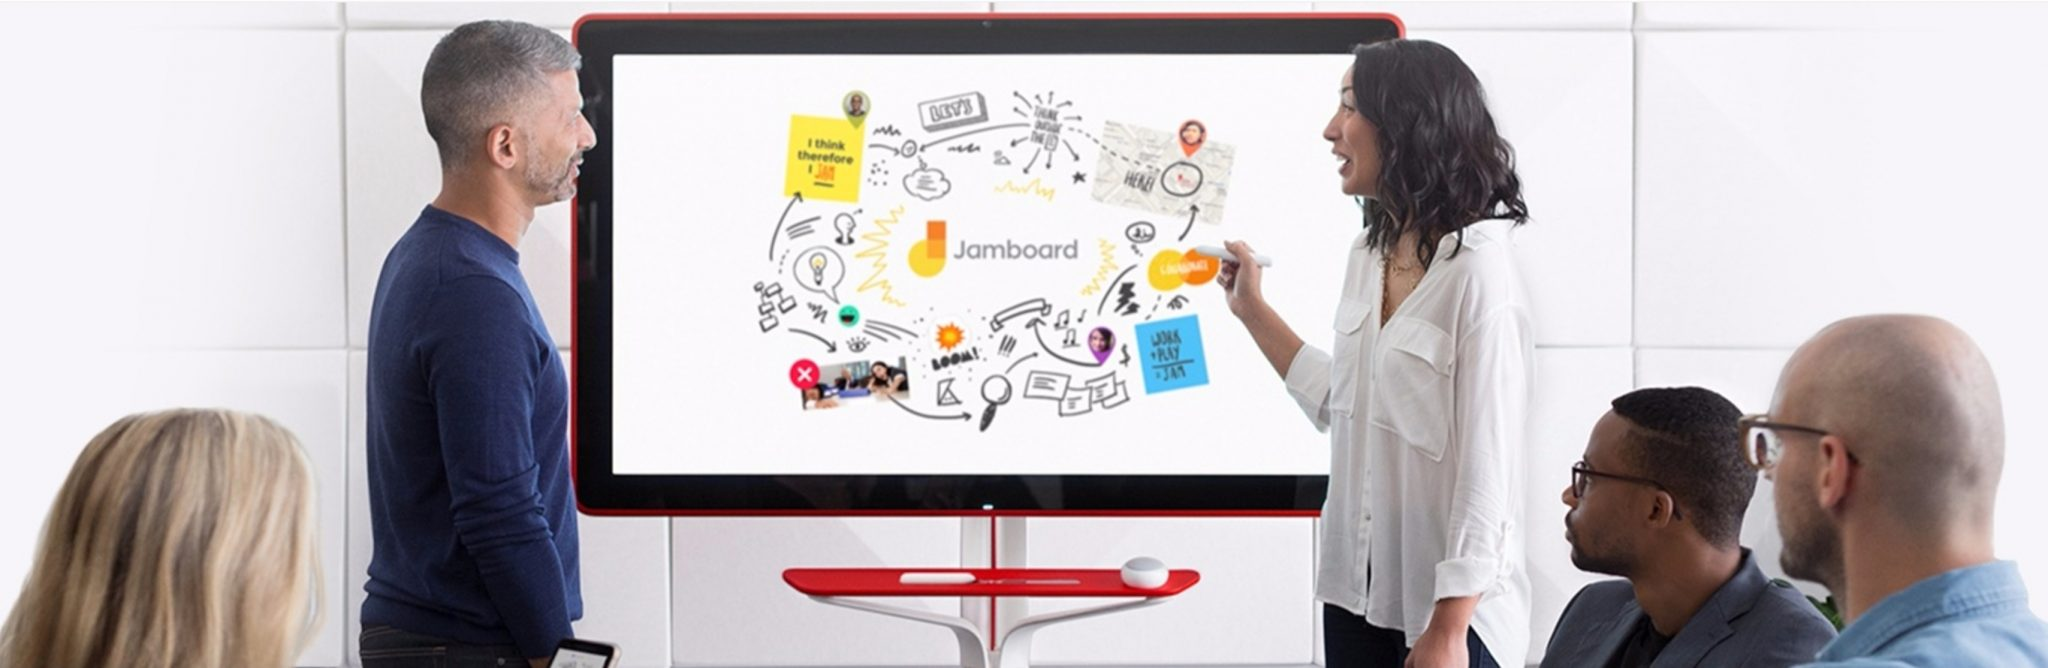 smart whiteboards